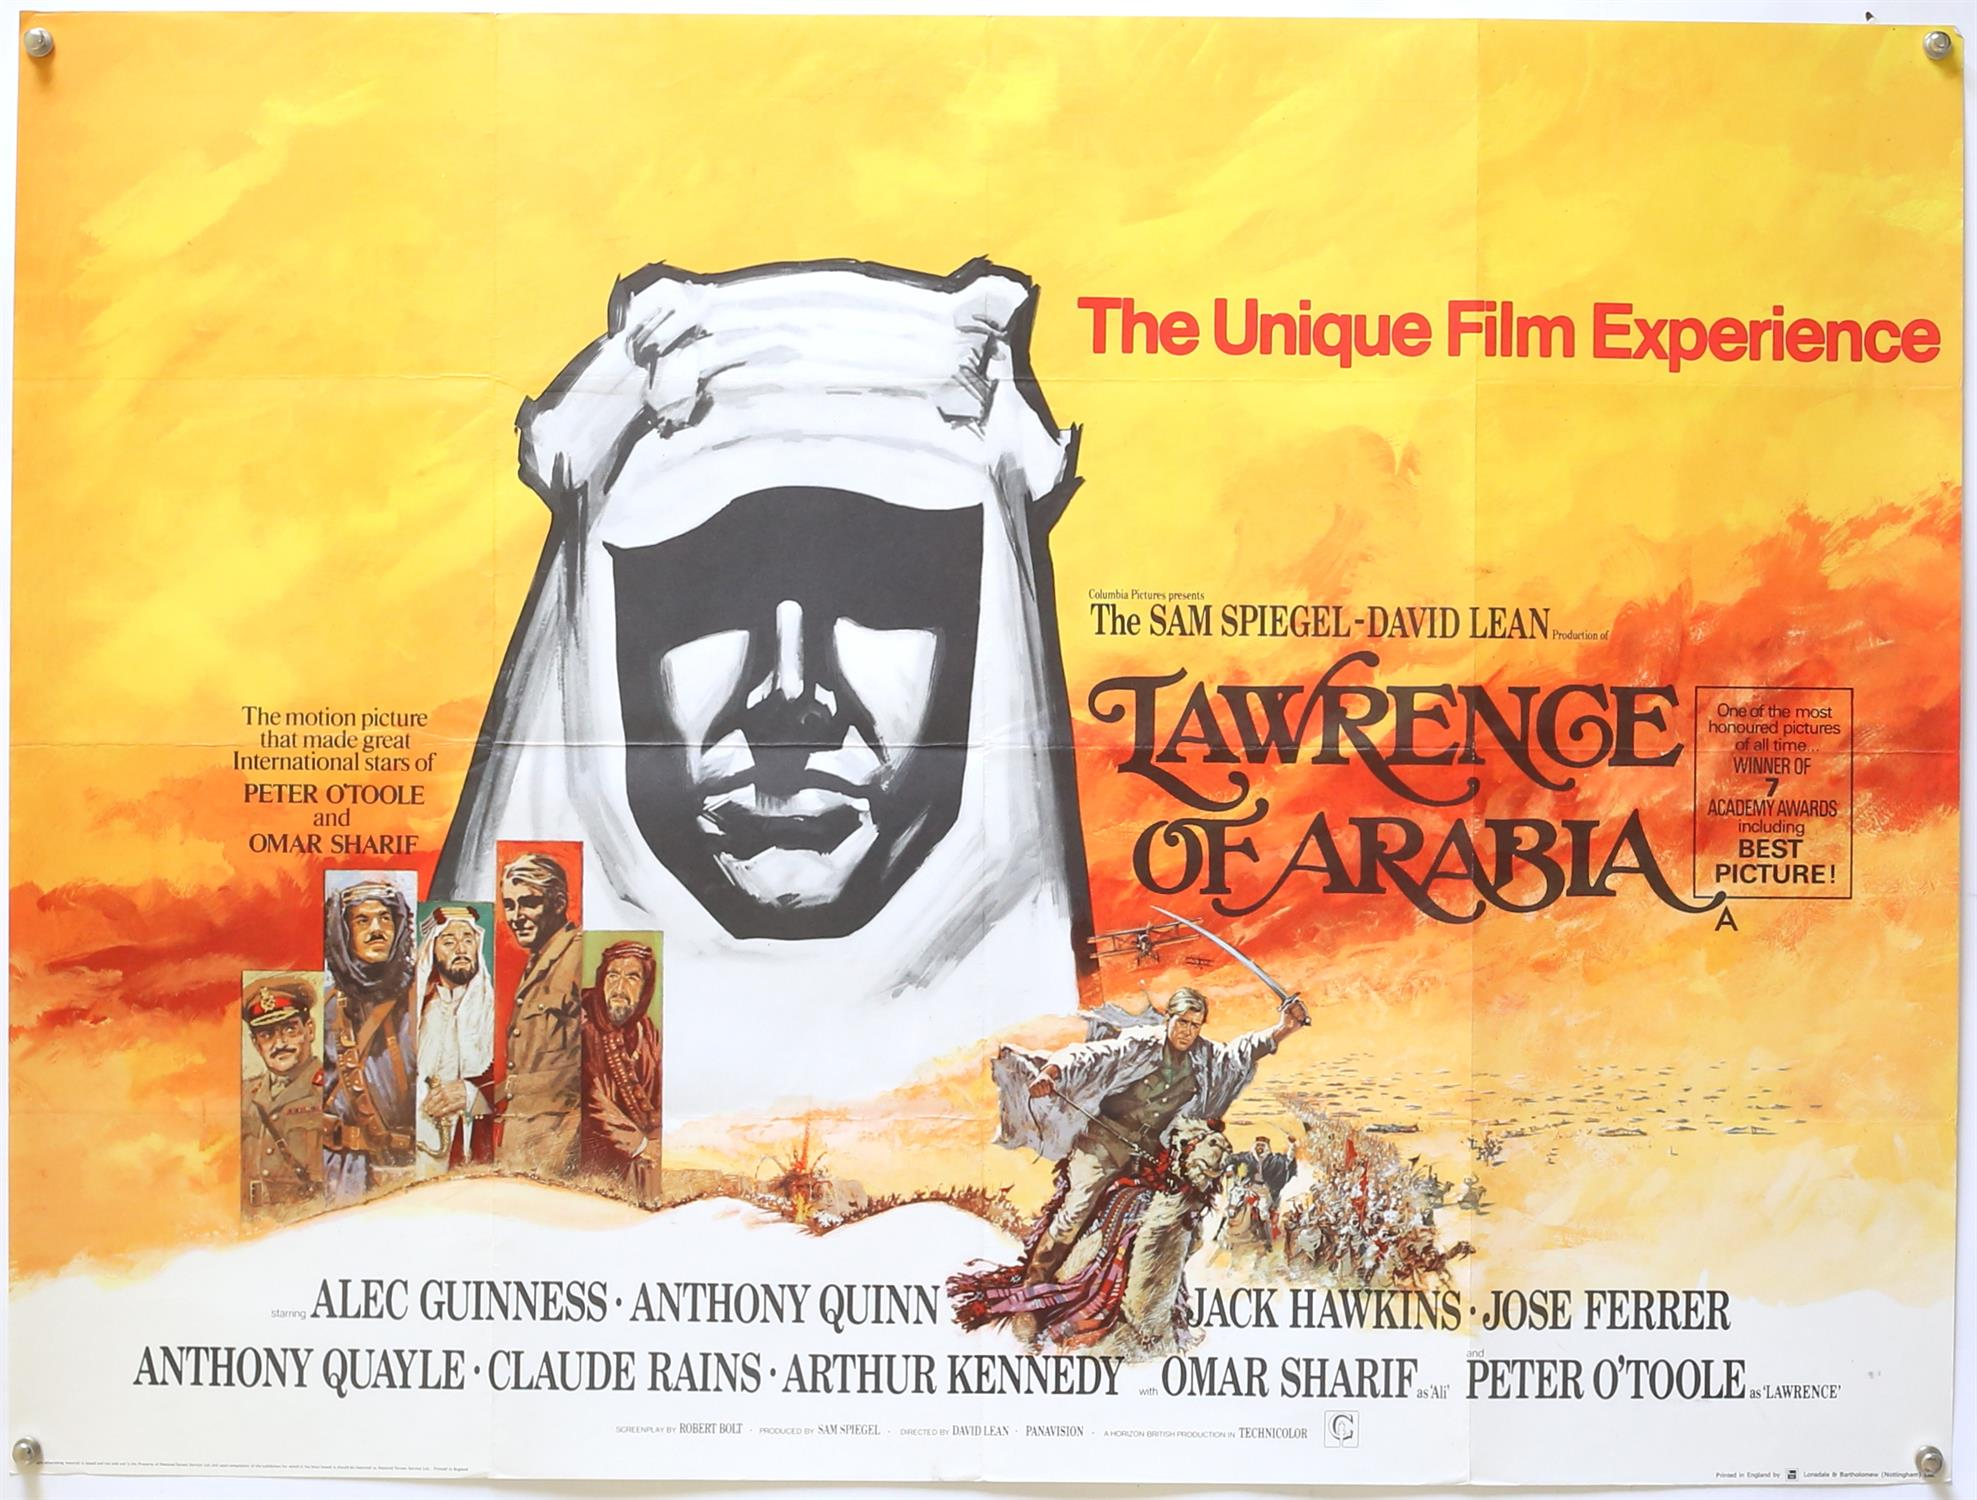 Lawrence Of Arabia (R-1971) British Quad film poster, starring Alec Guinness and Jack Hawkins,